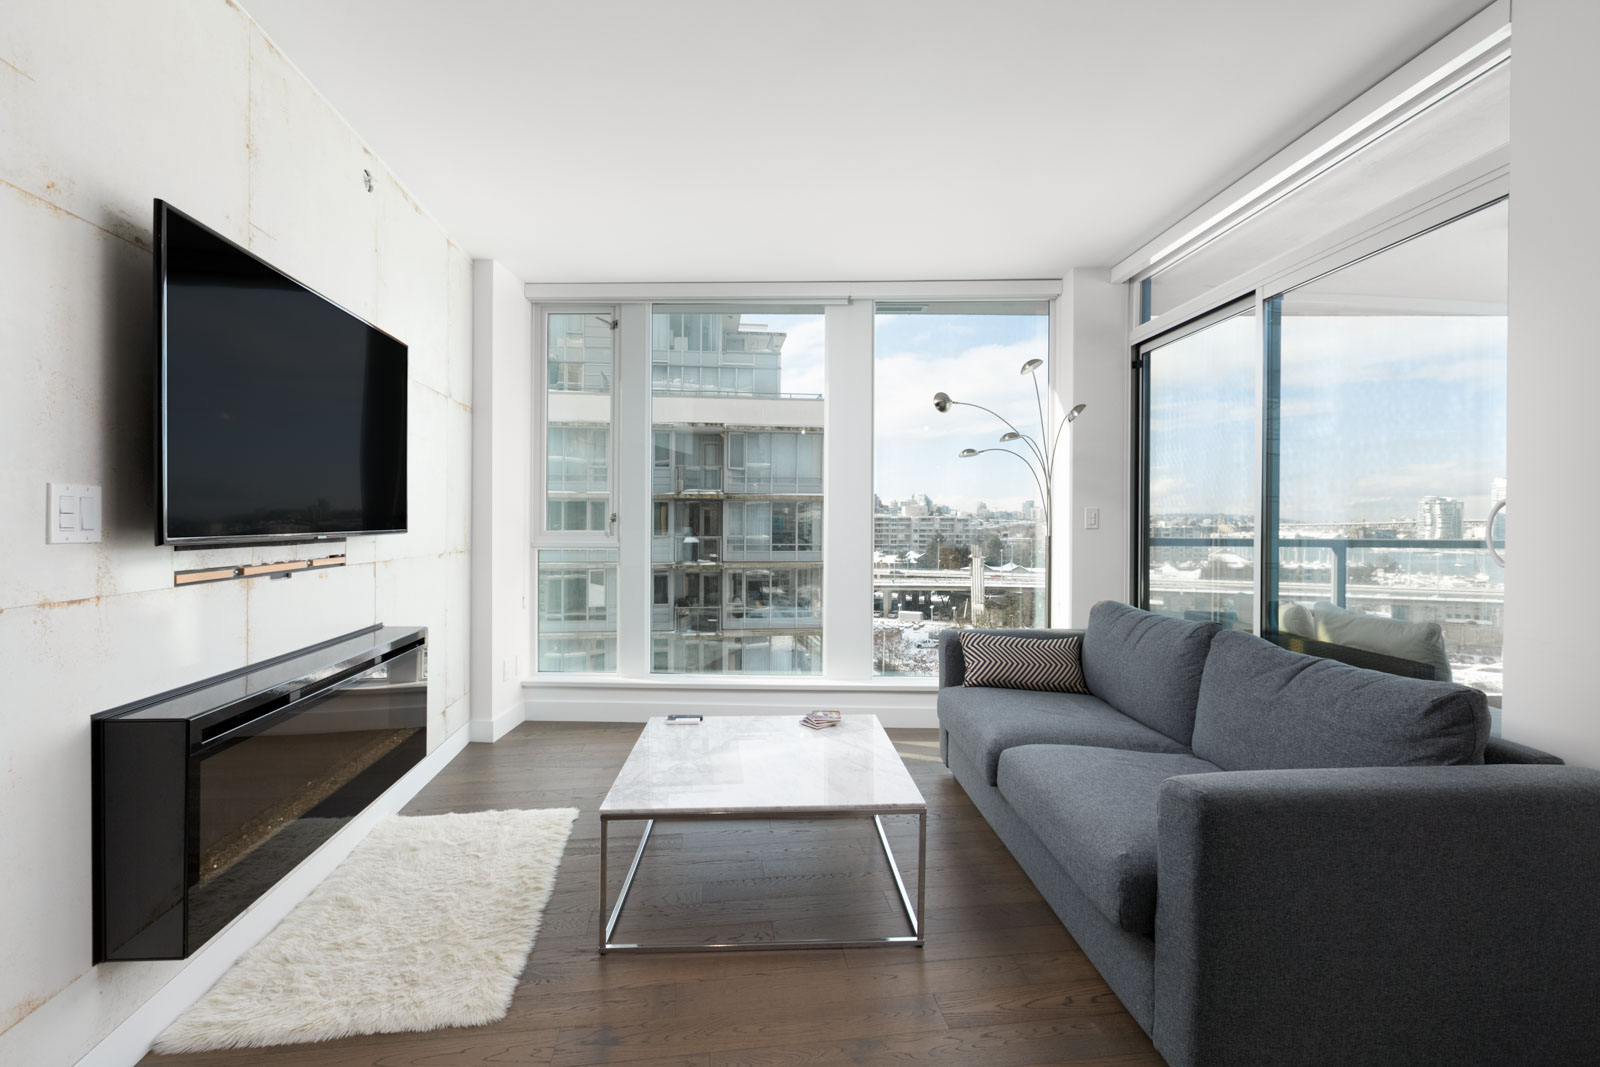 condo living room with floor to ceiling windows with flat screen tv on left wall and sofa on right and coffee table in centre with hardwood floors